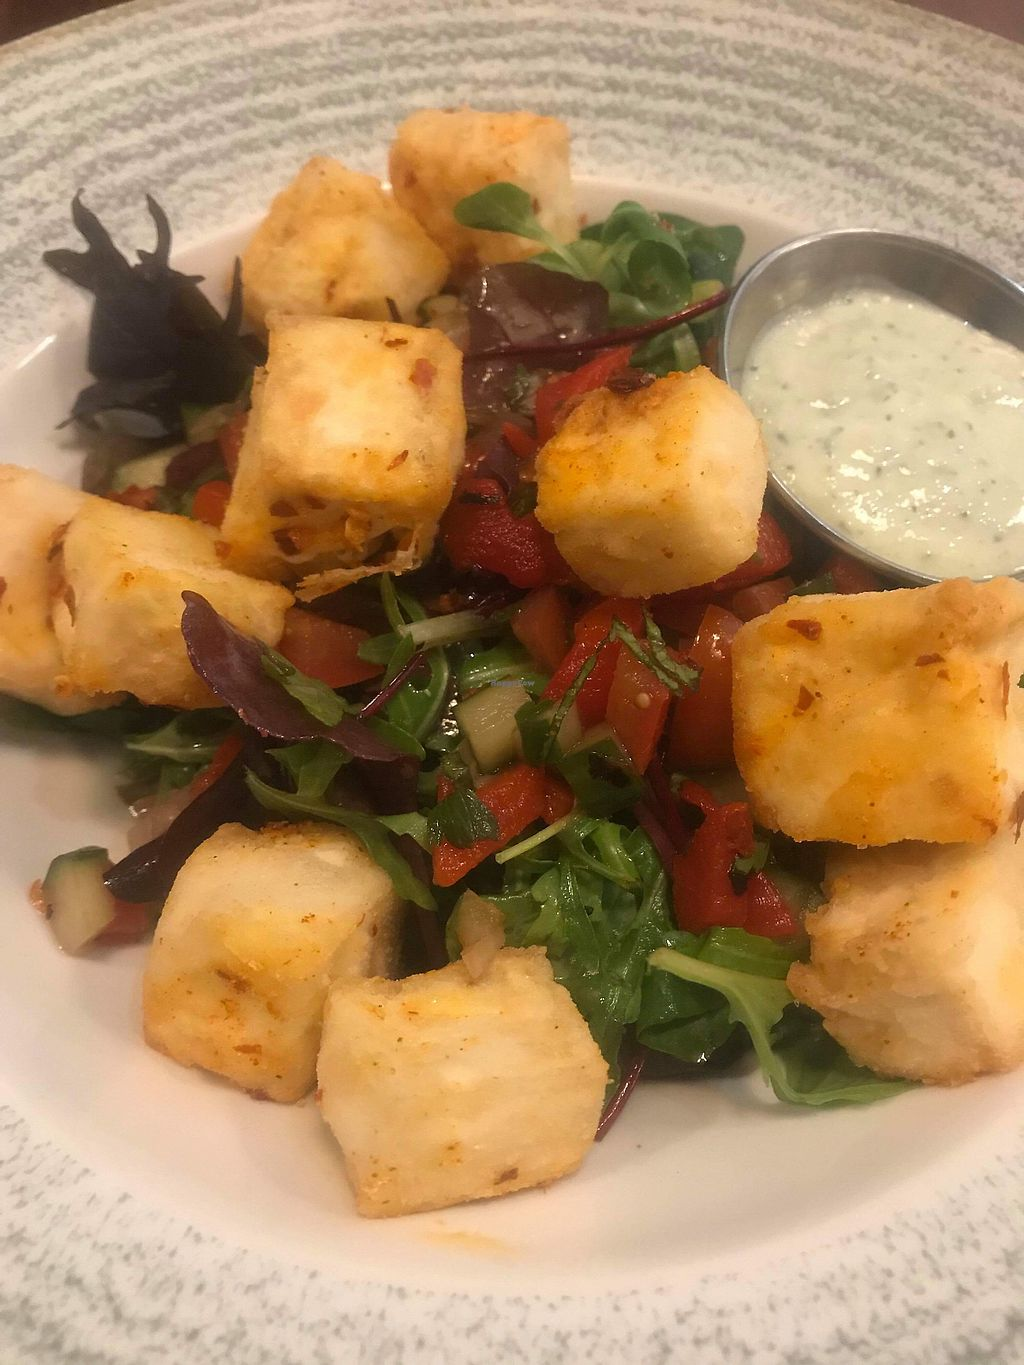 """Photo of Home Restaurant  by <a href=""""/members/profile/CiaraSlevin"""">CiaraSlevin</a> <br/>Tofu Salad Main <br/> April 10, 2018  - <a href='/contact/abuse/image/57001/383495'>Report</a>"""